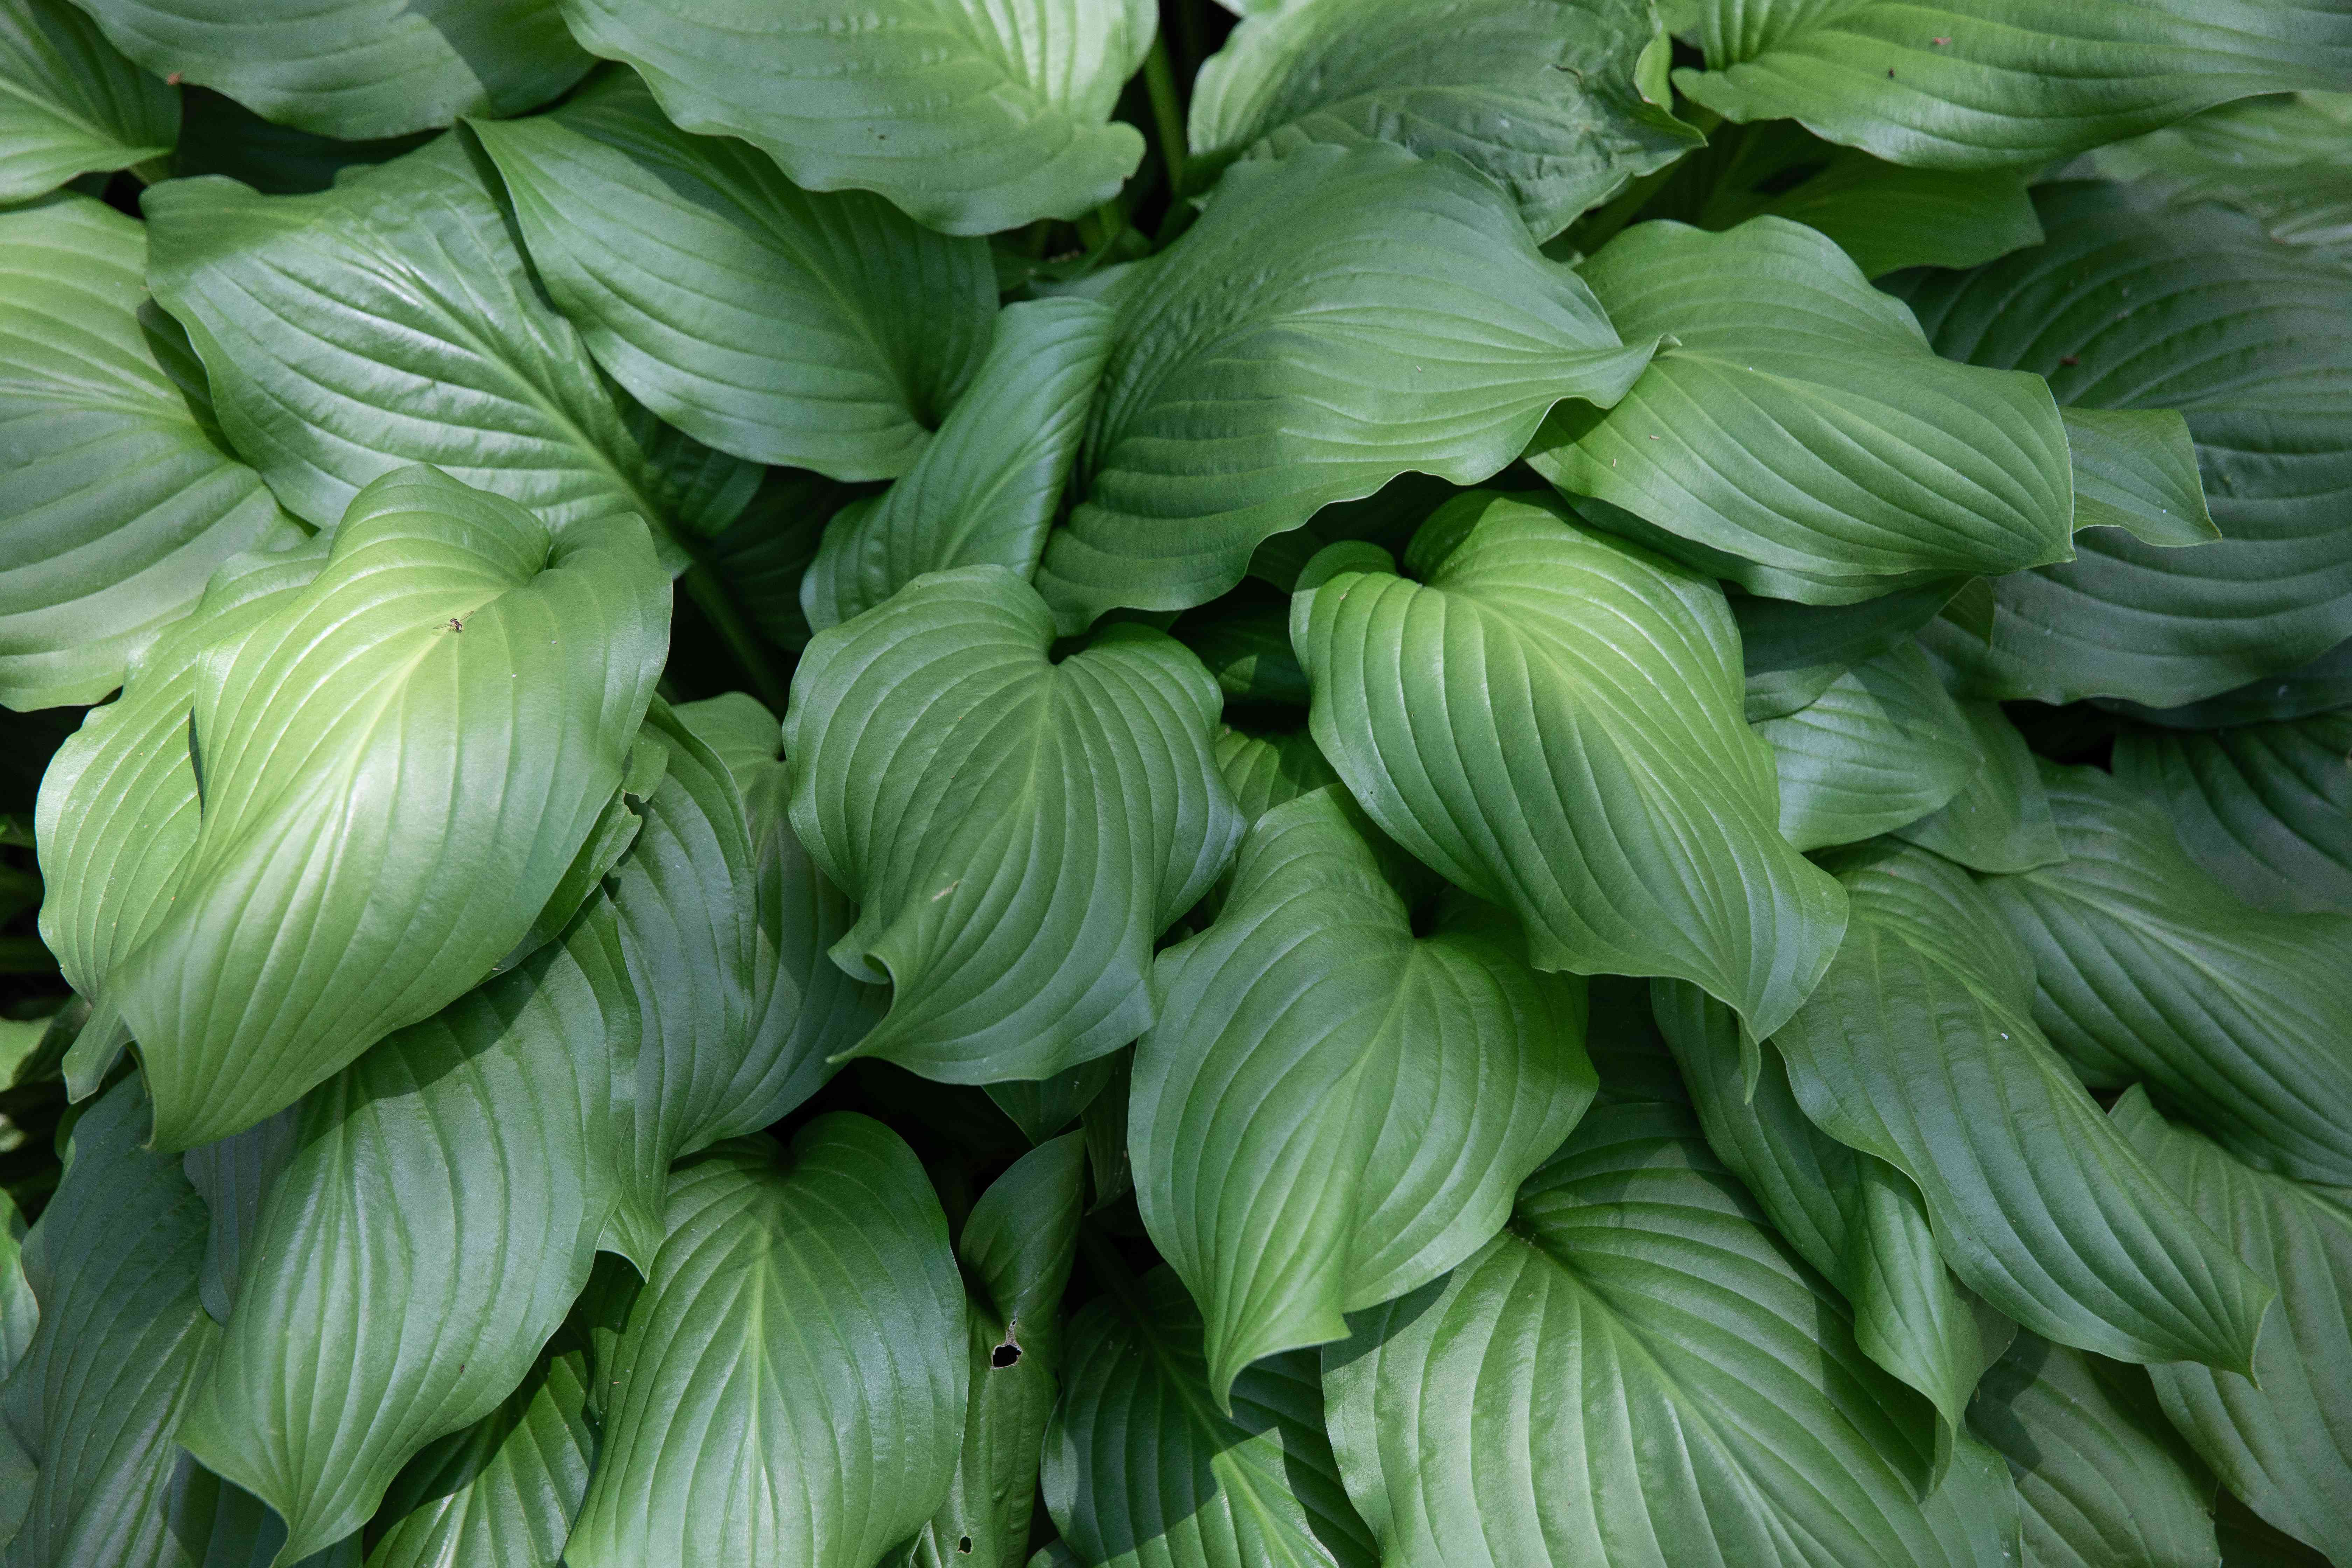 Hosta plant with blue-green ribbed leaves stacked on each other